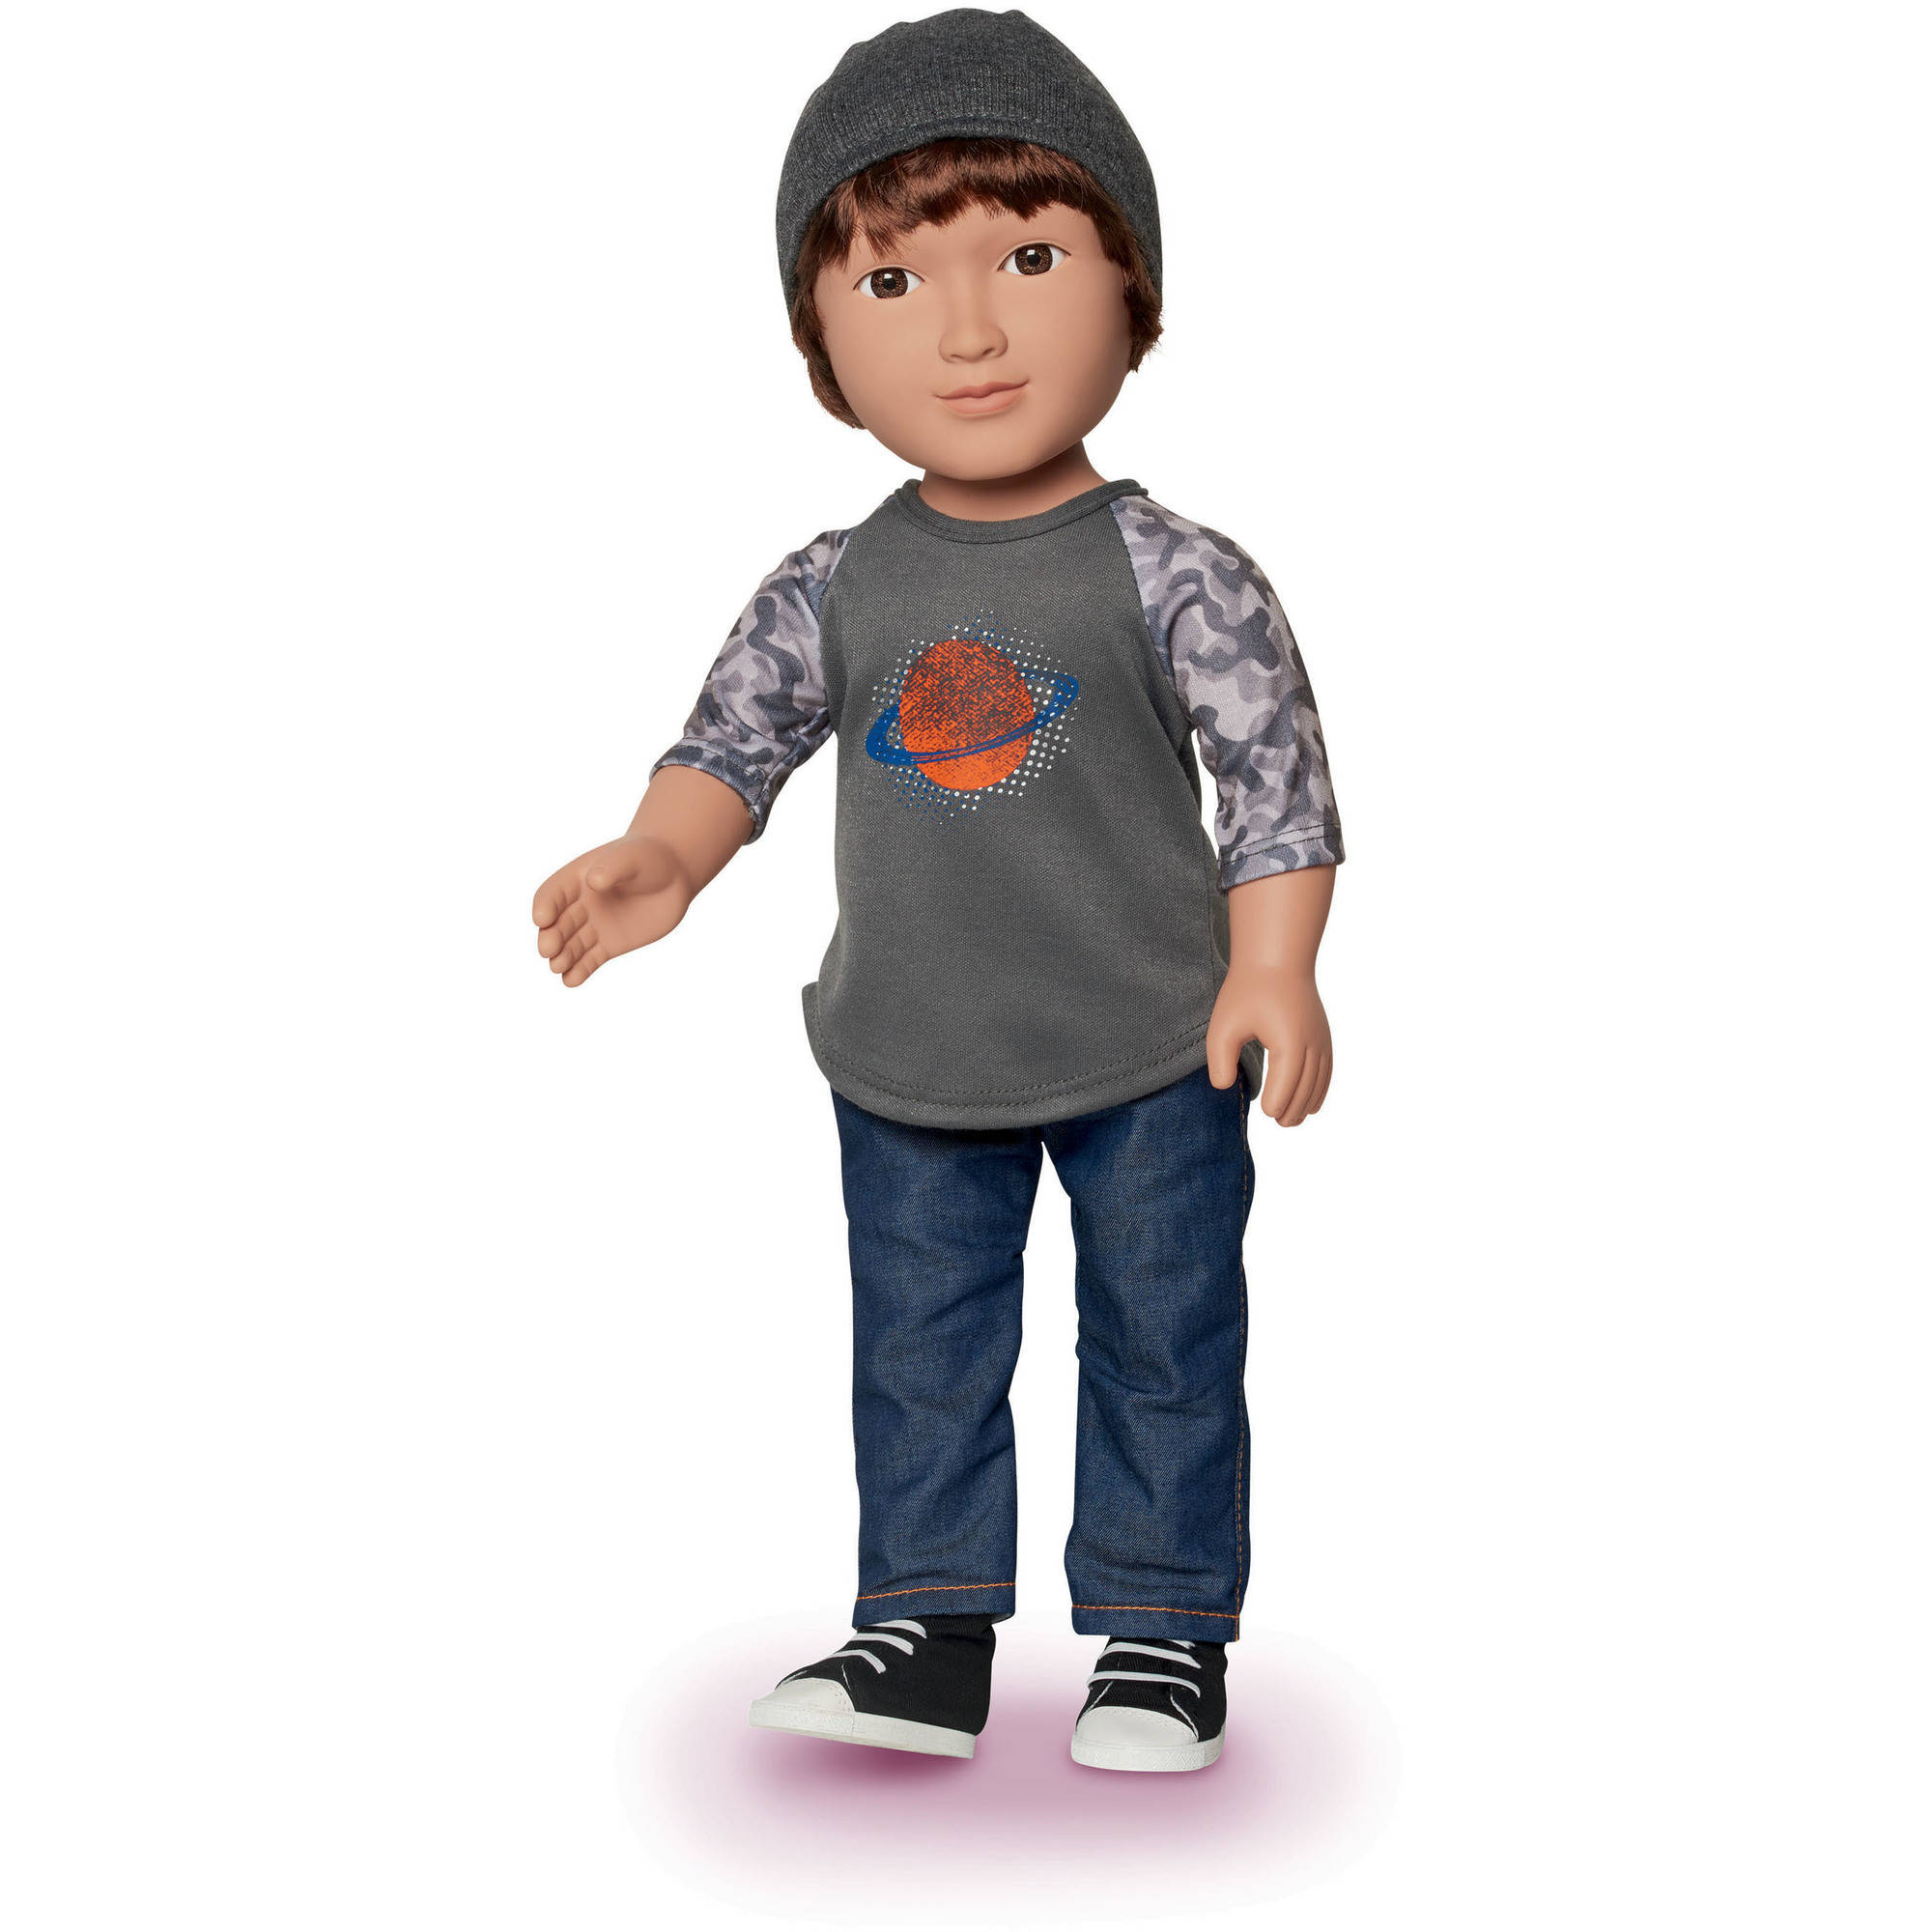 Walmart To Add My Life Boy Dolls To Its Stores